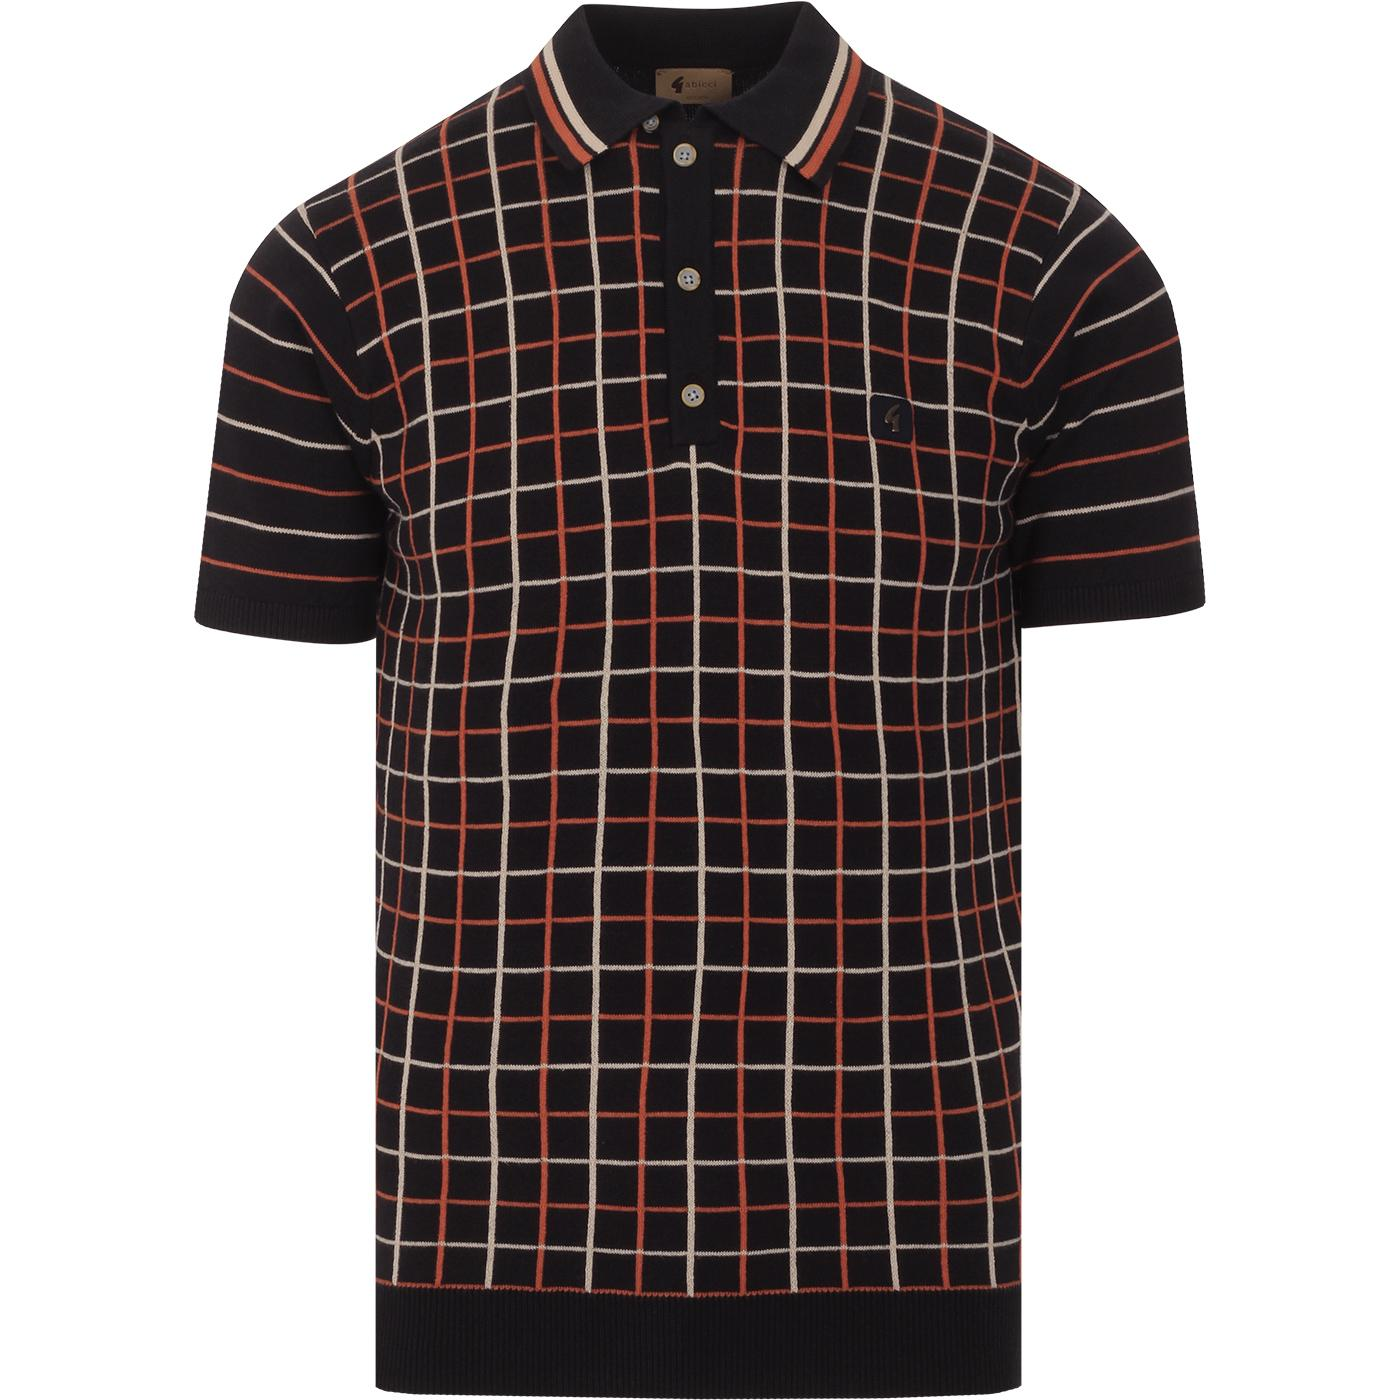 Chrono GABICCI VINTAGE Mod Graph Check Knit Polo N